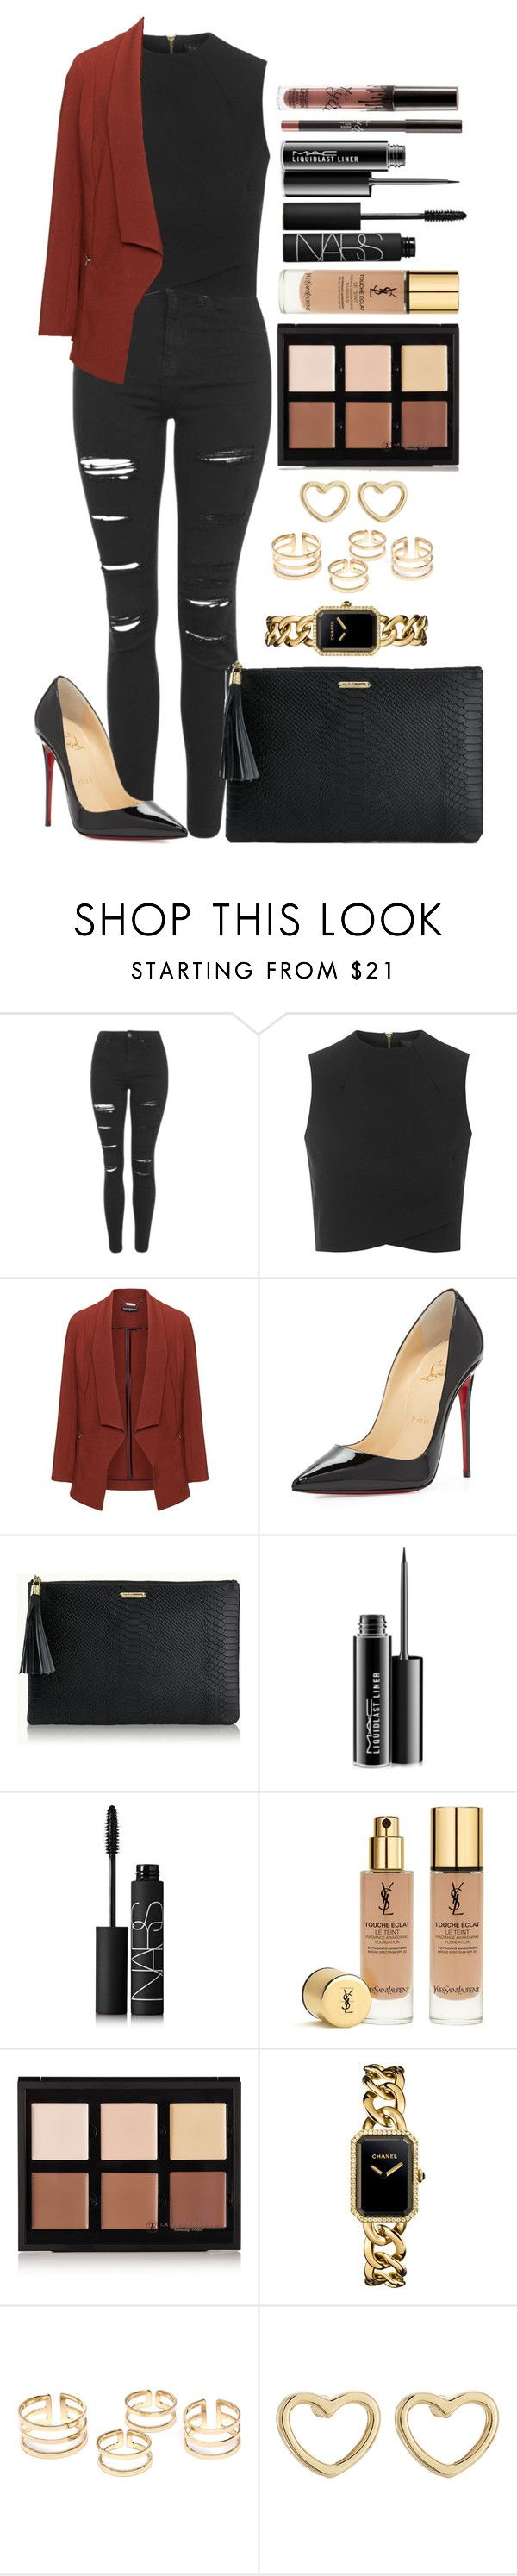 """Untitled #1338"" by fabianarveloc on Polyvore featuring Topshop, Manon Baptiste, Christian Louboutin, GiGi New York, MAC Cosmetics, NARS Cosmetics, Yves Saint Laurent, Anastasia Beverly Hills, Chanel and Marc by Marc Jacobs"